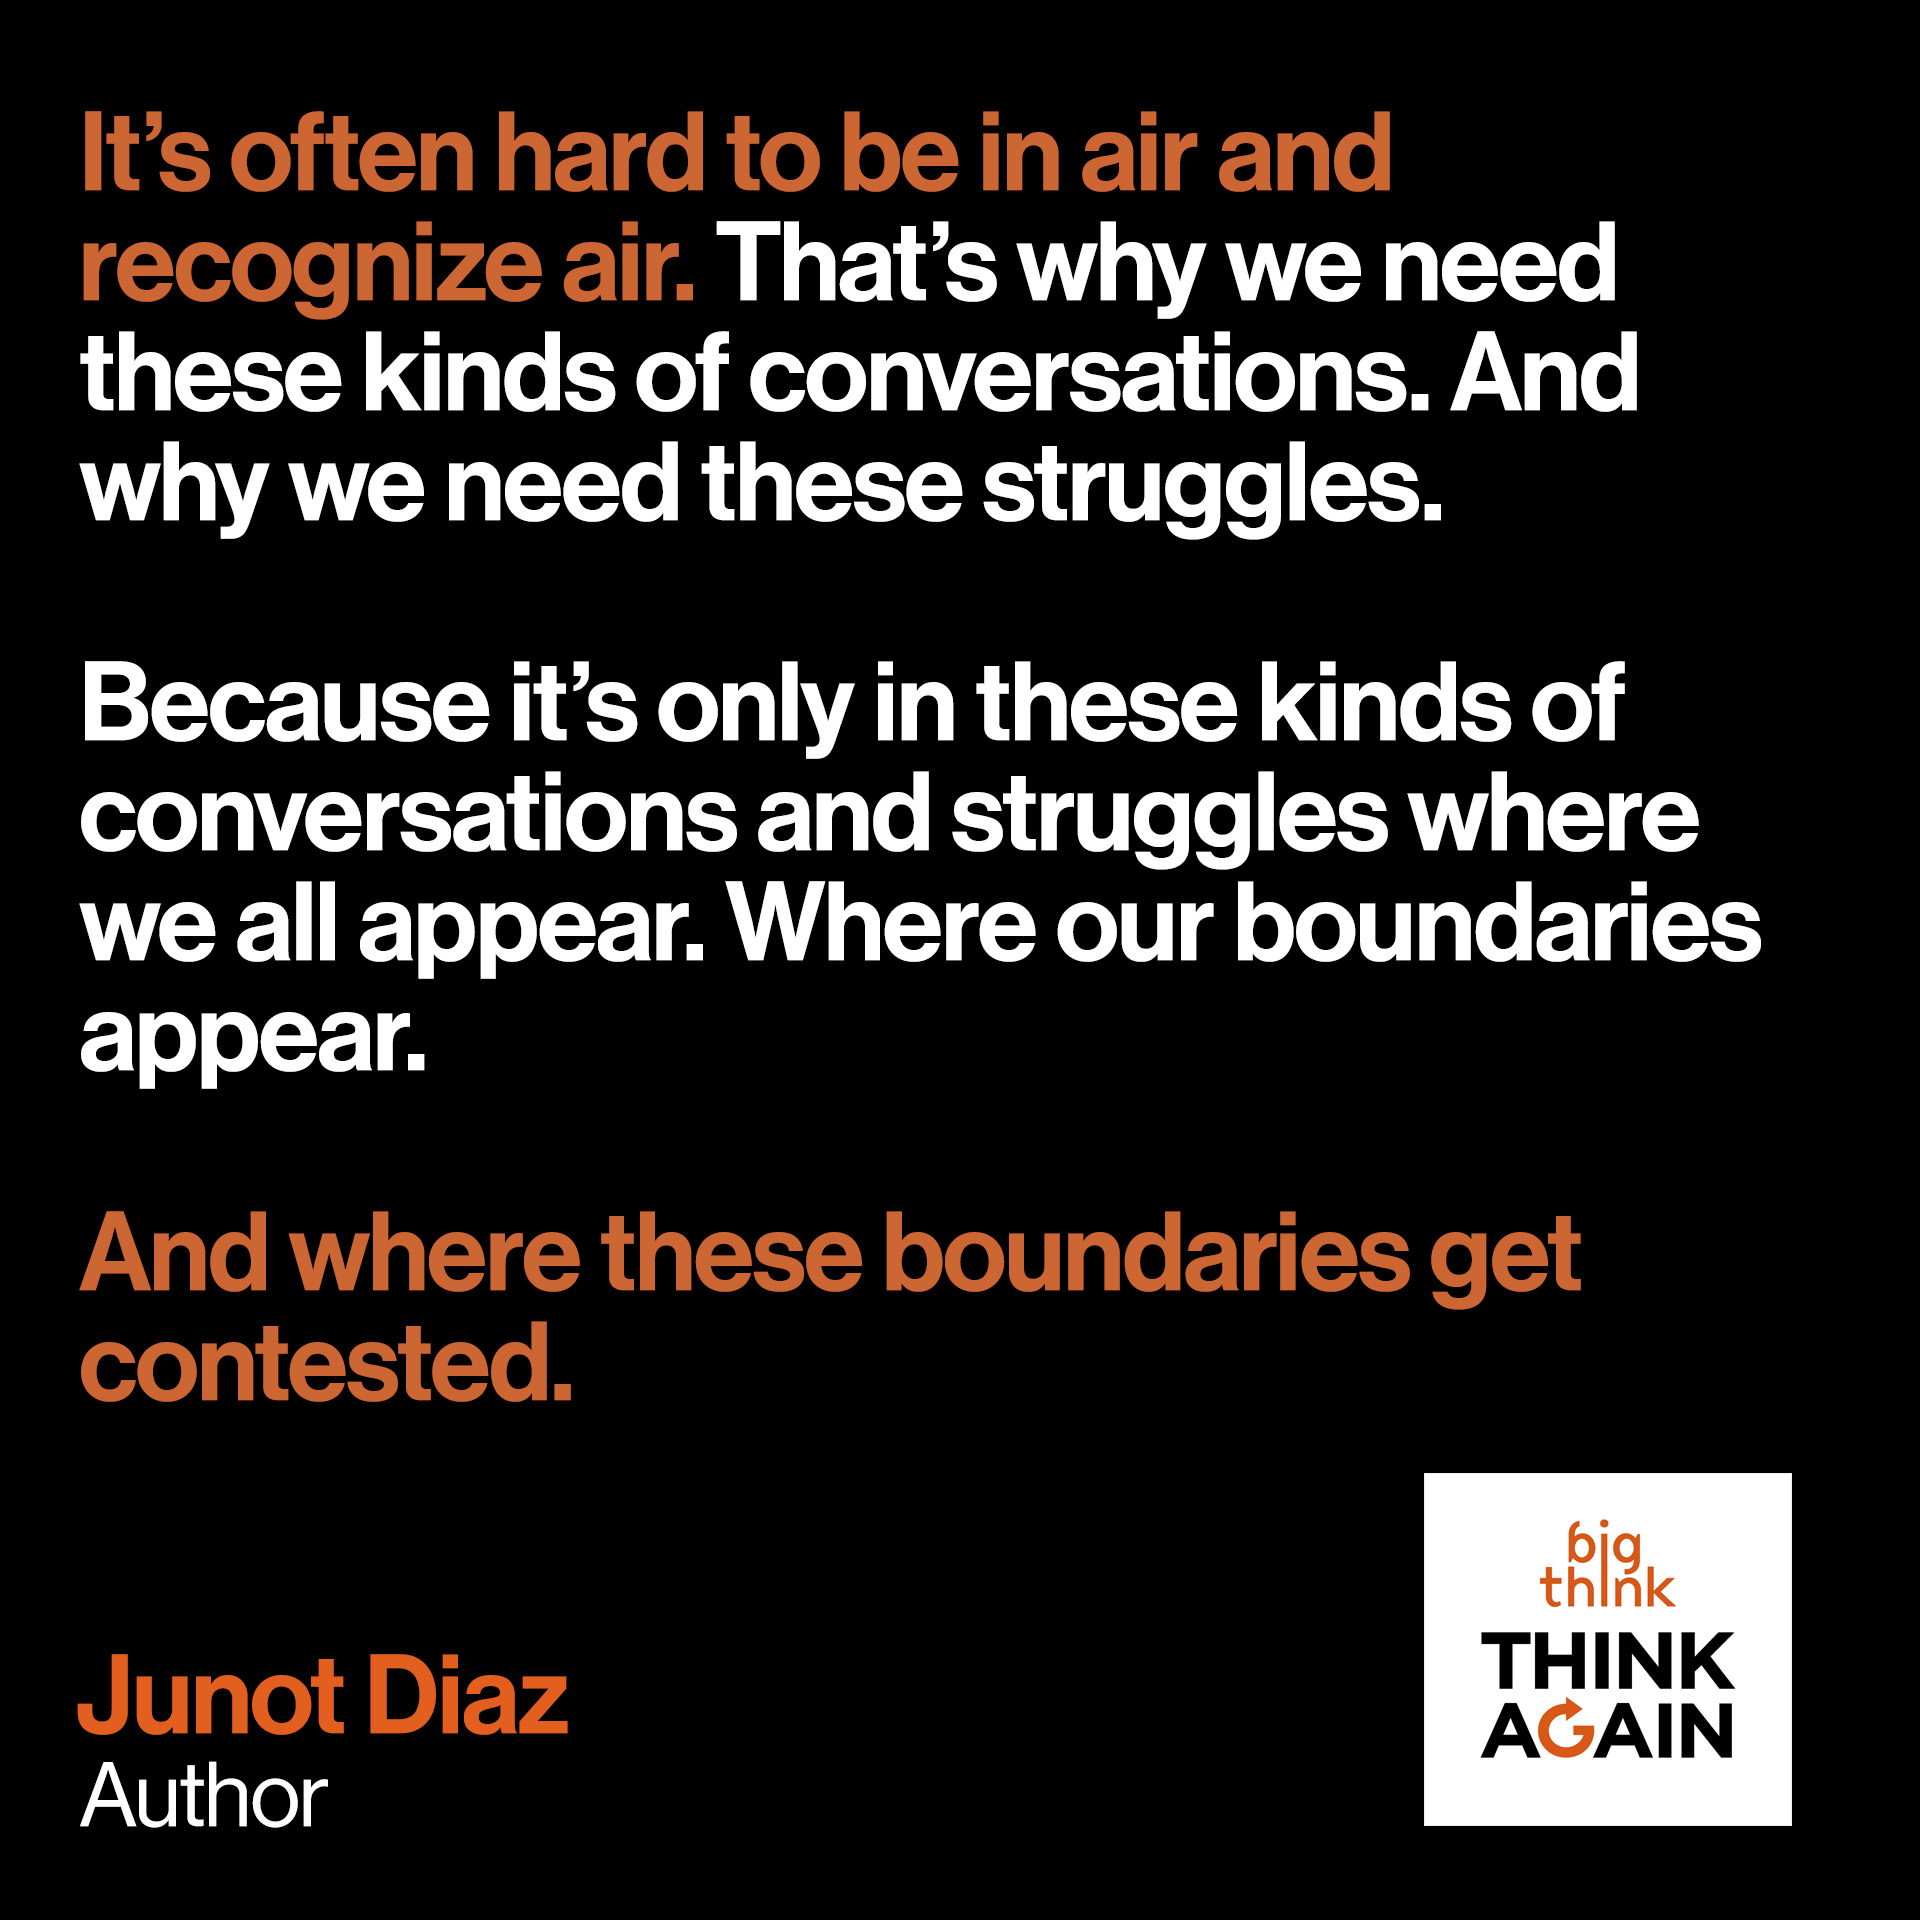 Junot Diaz Quote: It's often hard to be in air and recognize air. That's why we need these kinds of conversations. And why we need these struggles.  Because It's only in these kinds of conversations and struggles where we all appear.  Where our boundaries appear. And where these boundaries get contested.